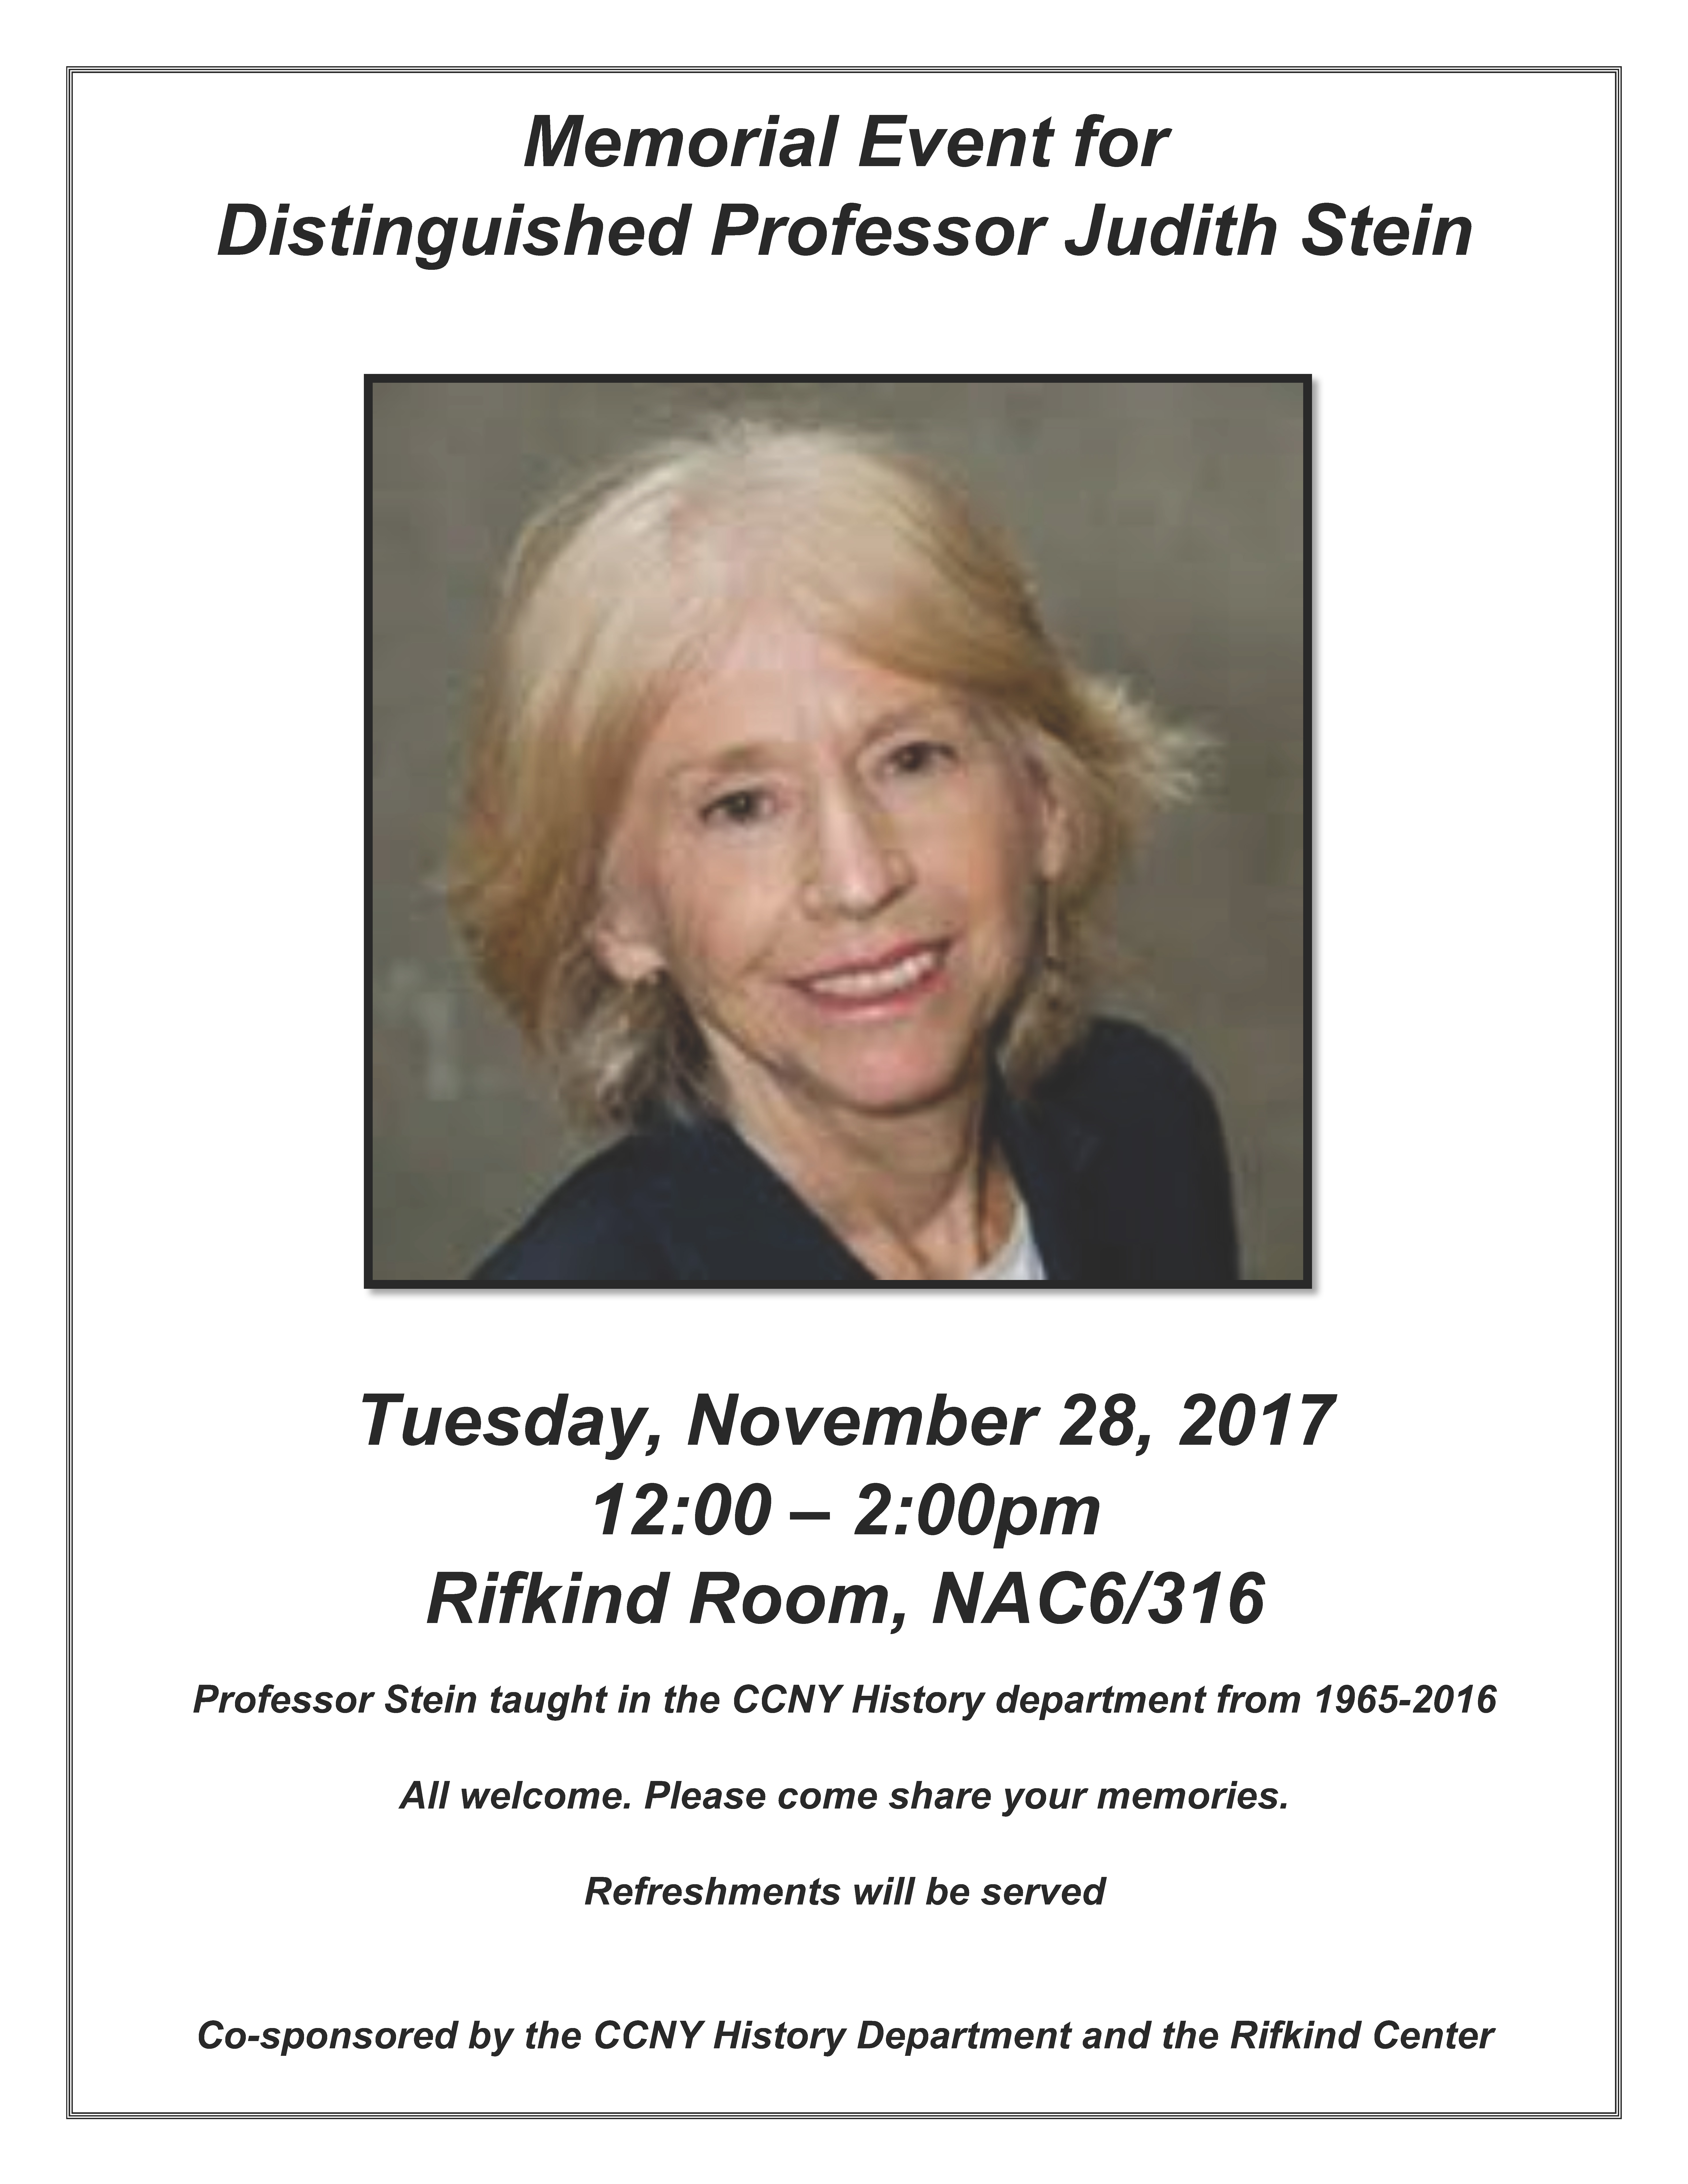 Memorial Event for Judith Stein